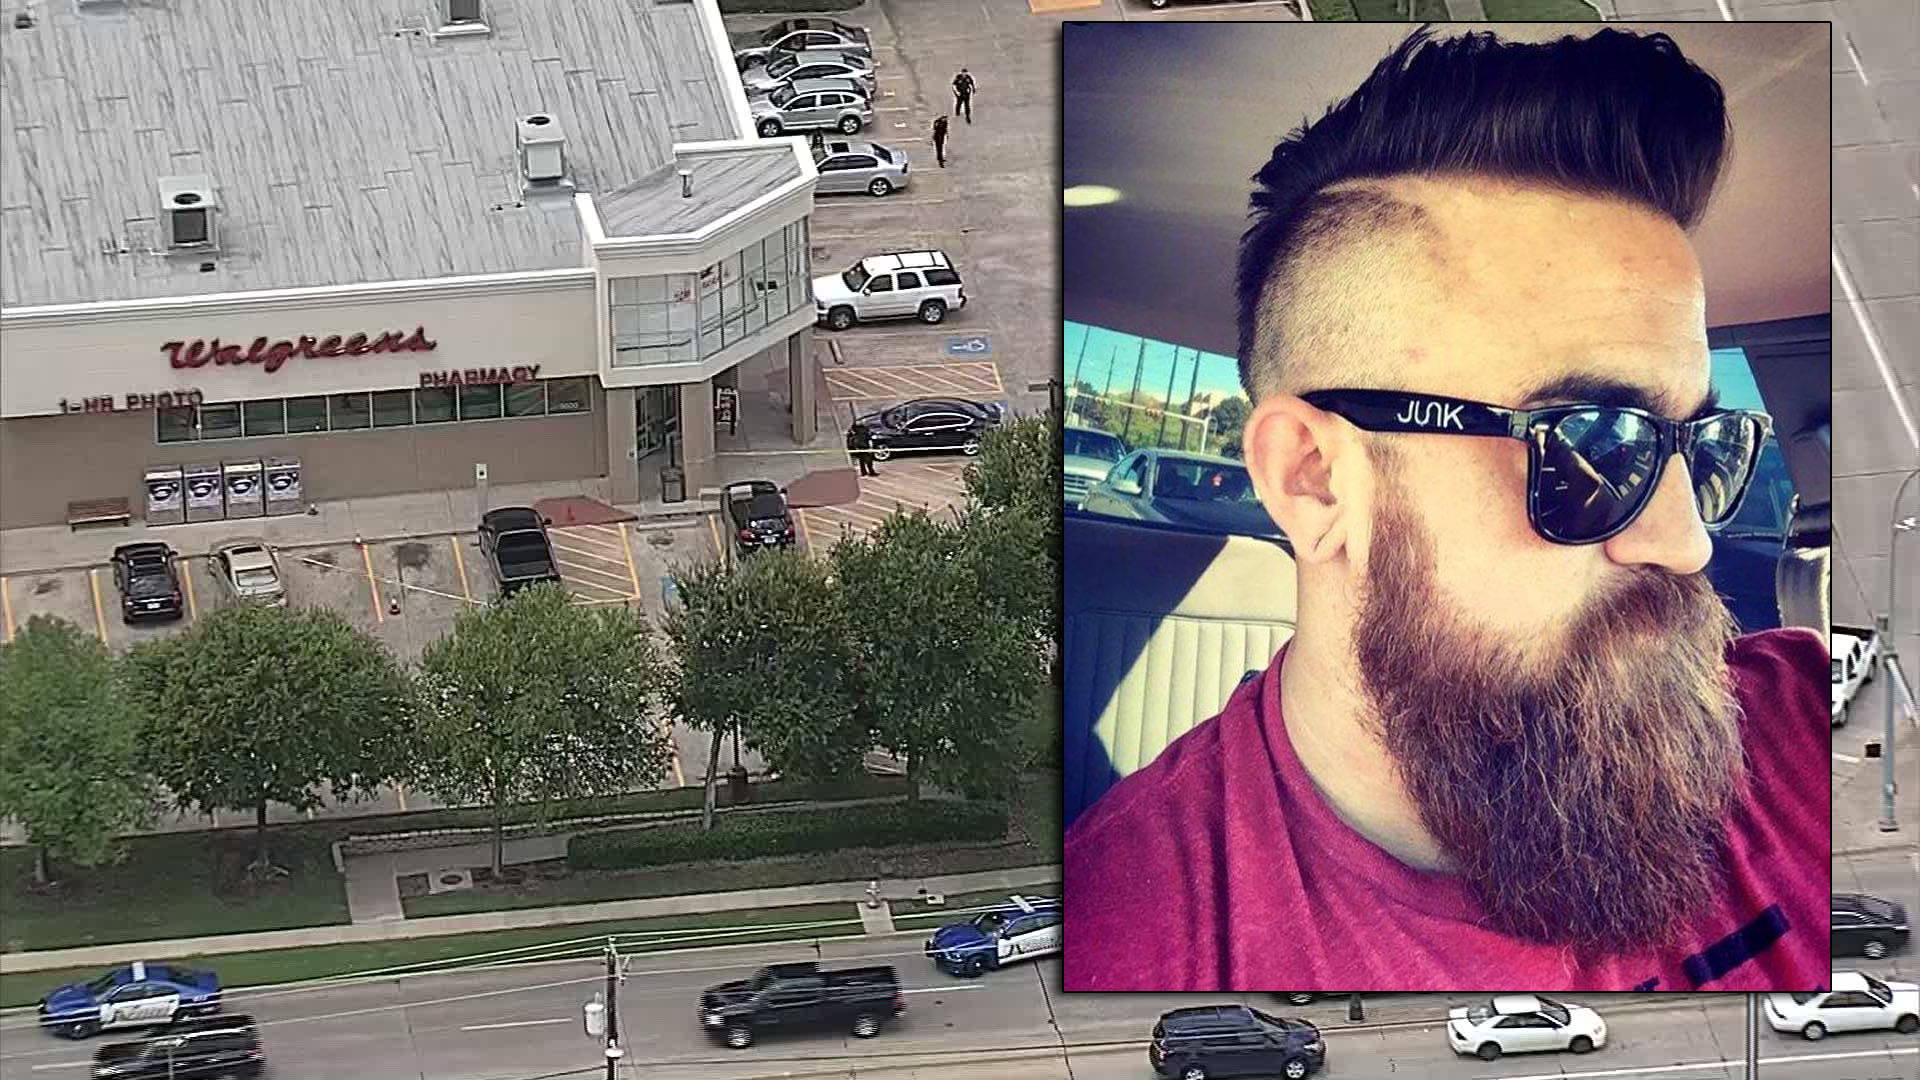 fort worth news newslocker a marine who witnessed and tried to intervene during a domestic shooting monday was fatally shot by an army ier accused in the initial altercation